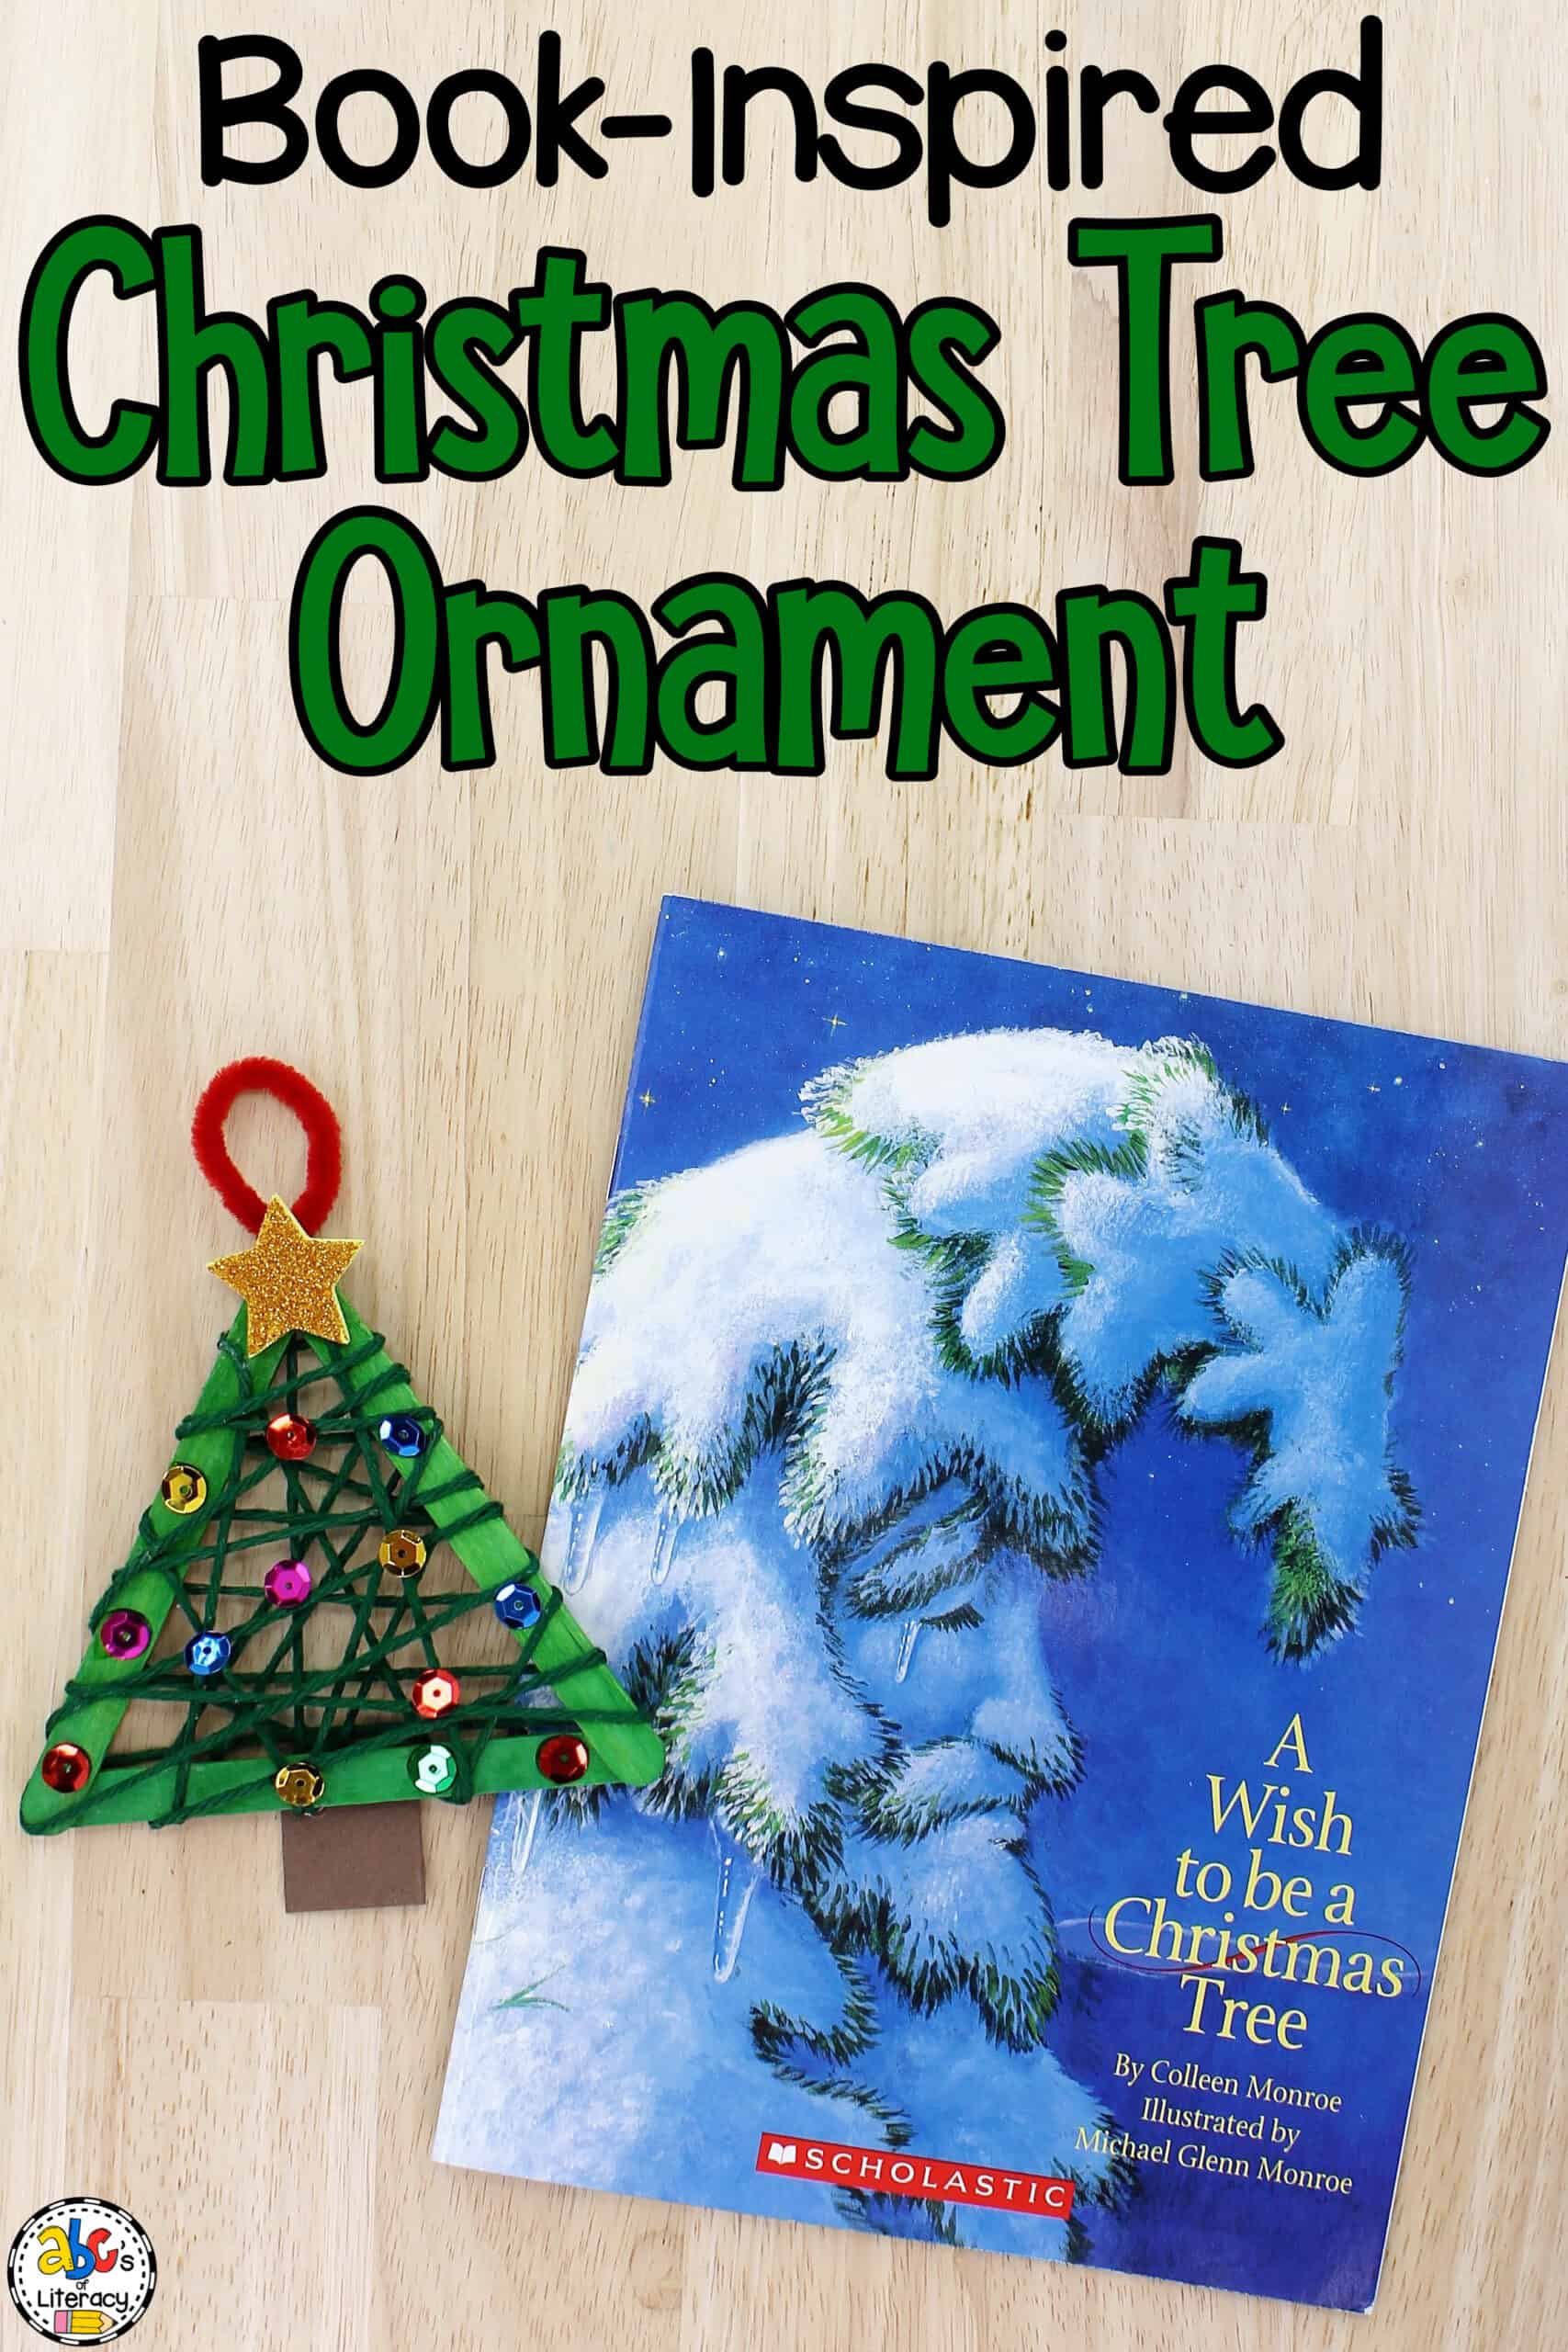 Book-Inspired Christmas Tree Ornament